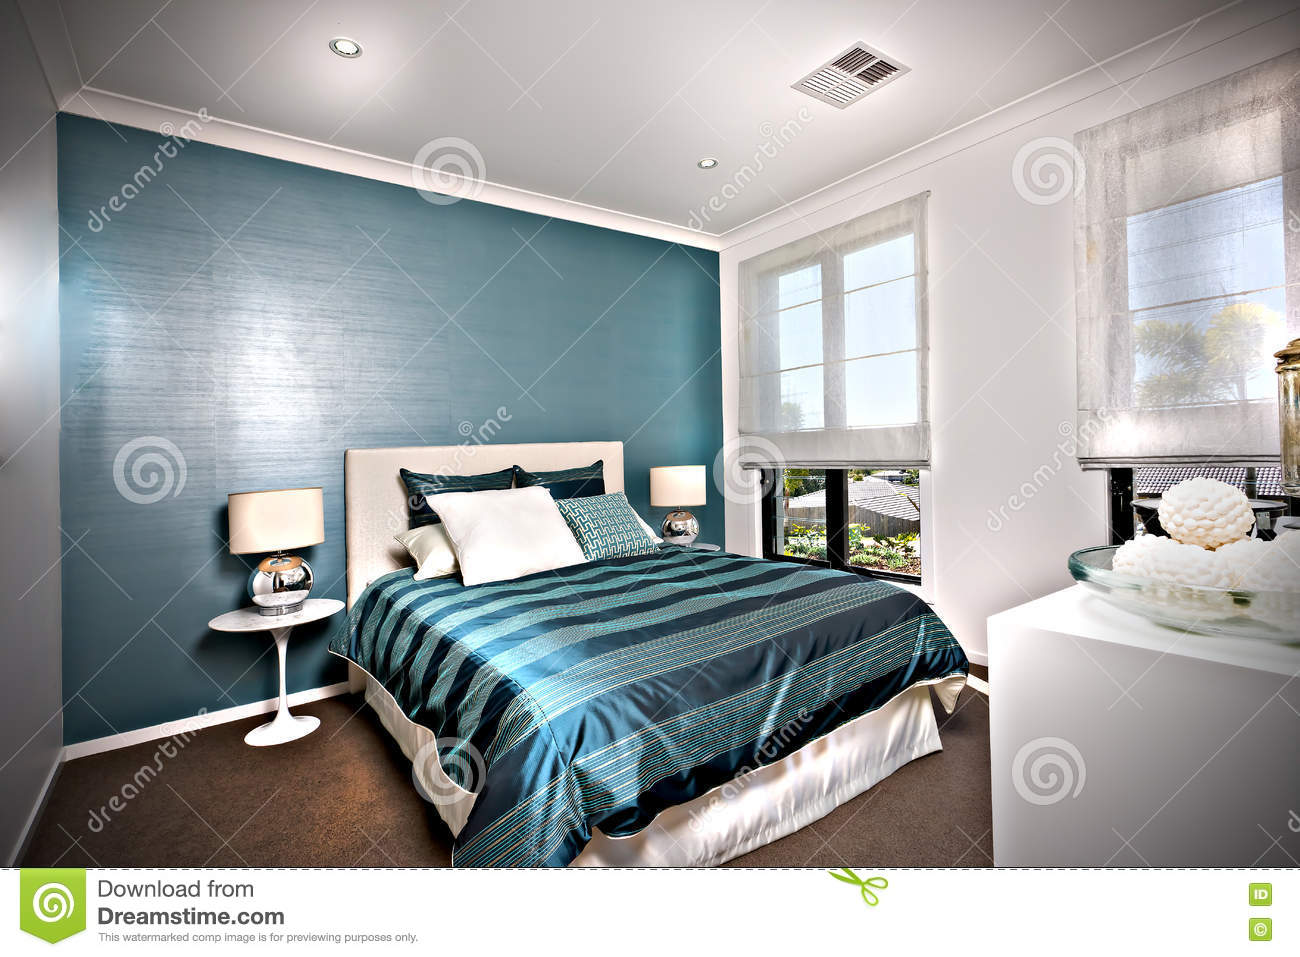 Awesome Parete Camera Da Letto Blu Photos - Design and Ideas ...